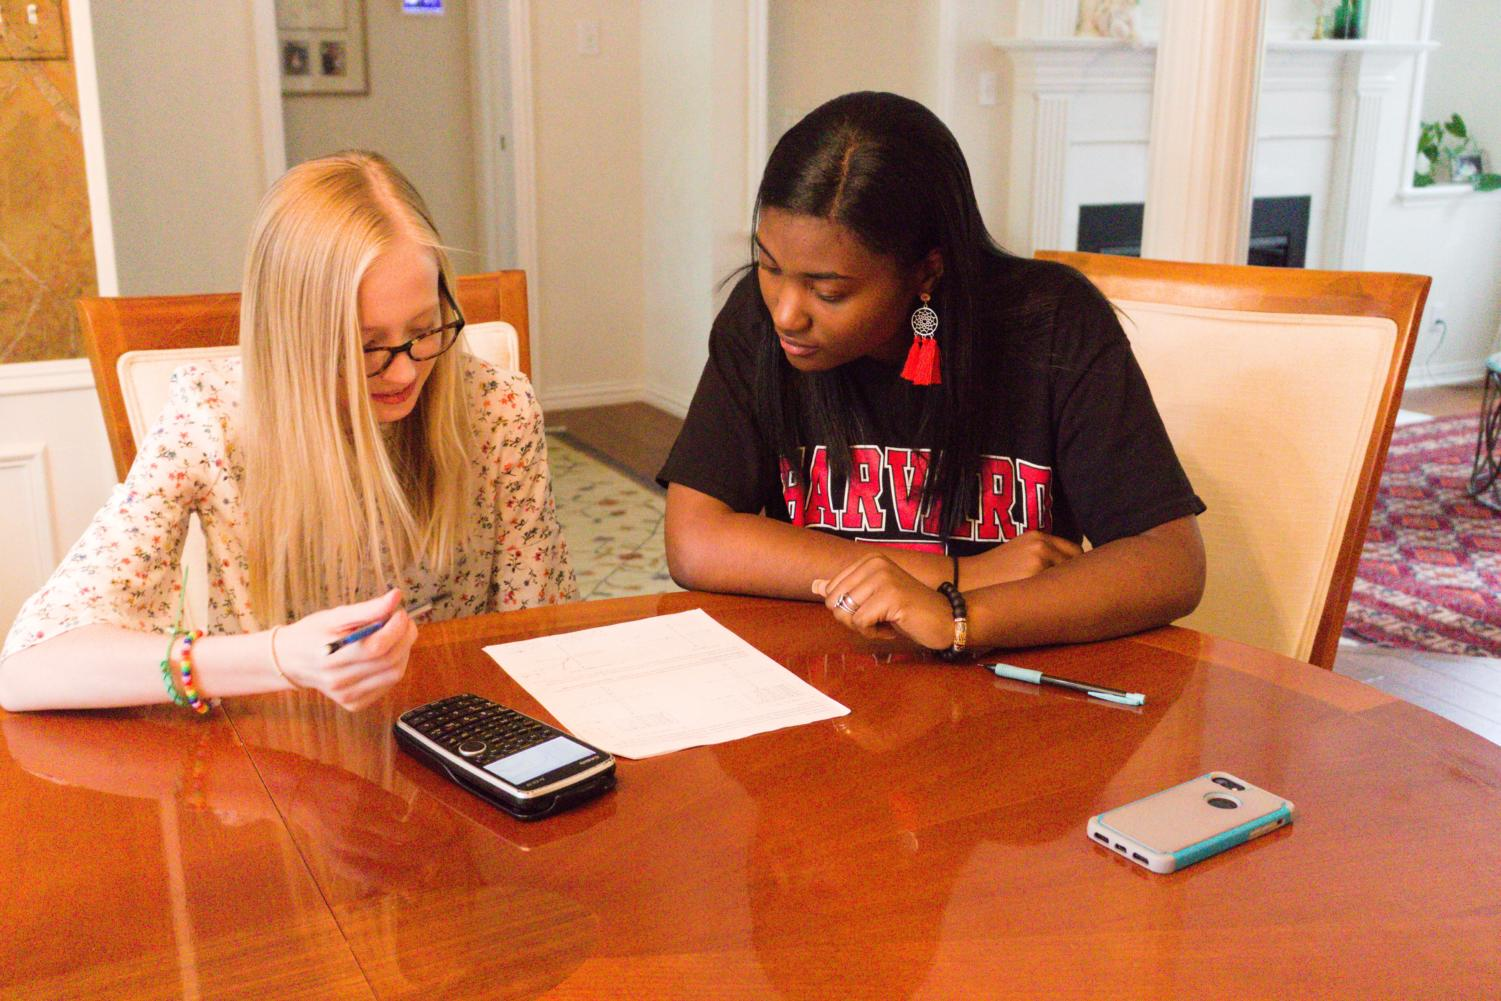 Coppell High School senior Peyton Williams tutors CHS sophomore Lauren Myers for Algebra II on April 22 at Myer's residence. Williams has tutored students in a variety of subjects throughout high school and is attending Harvard University in fall 2019.